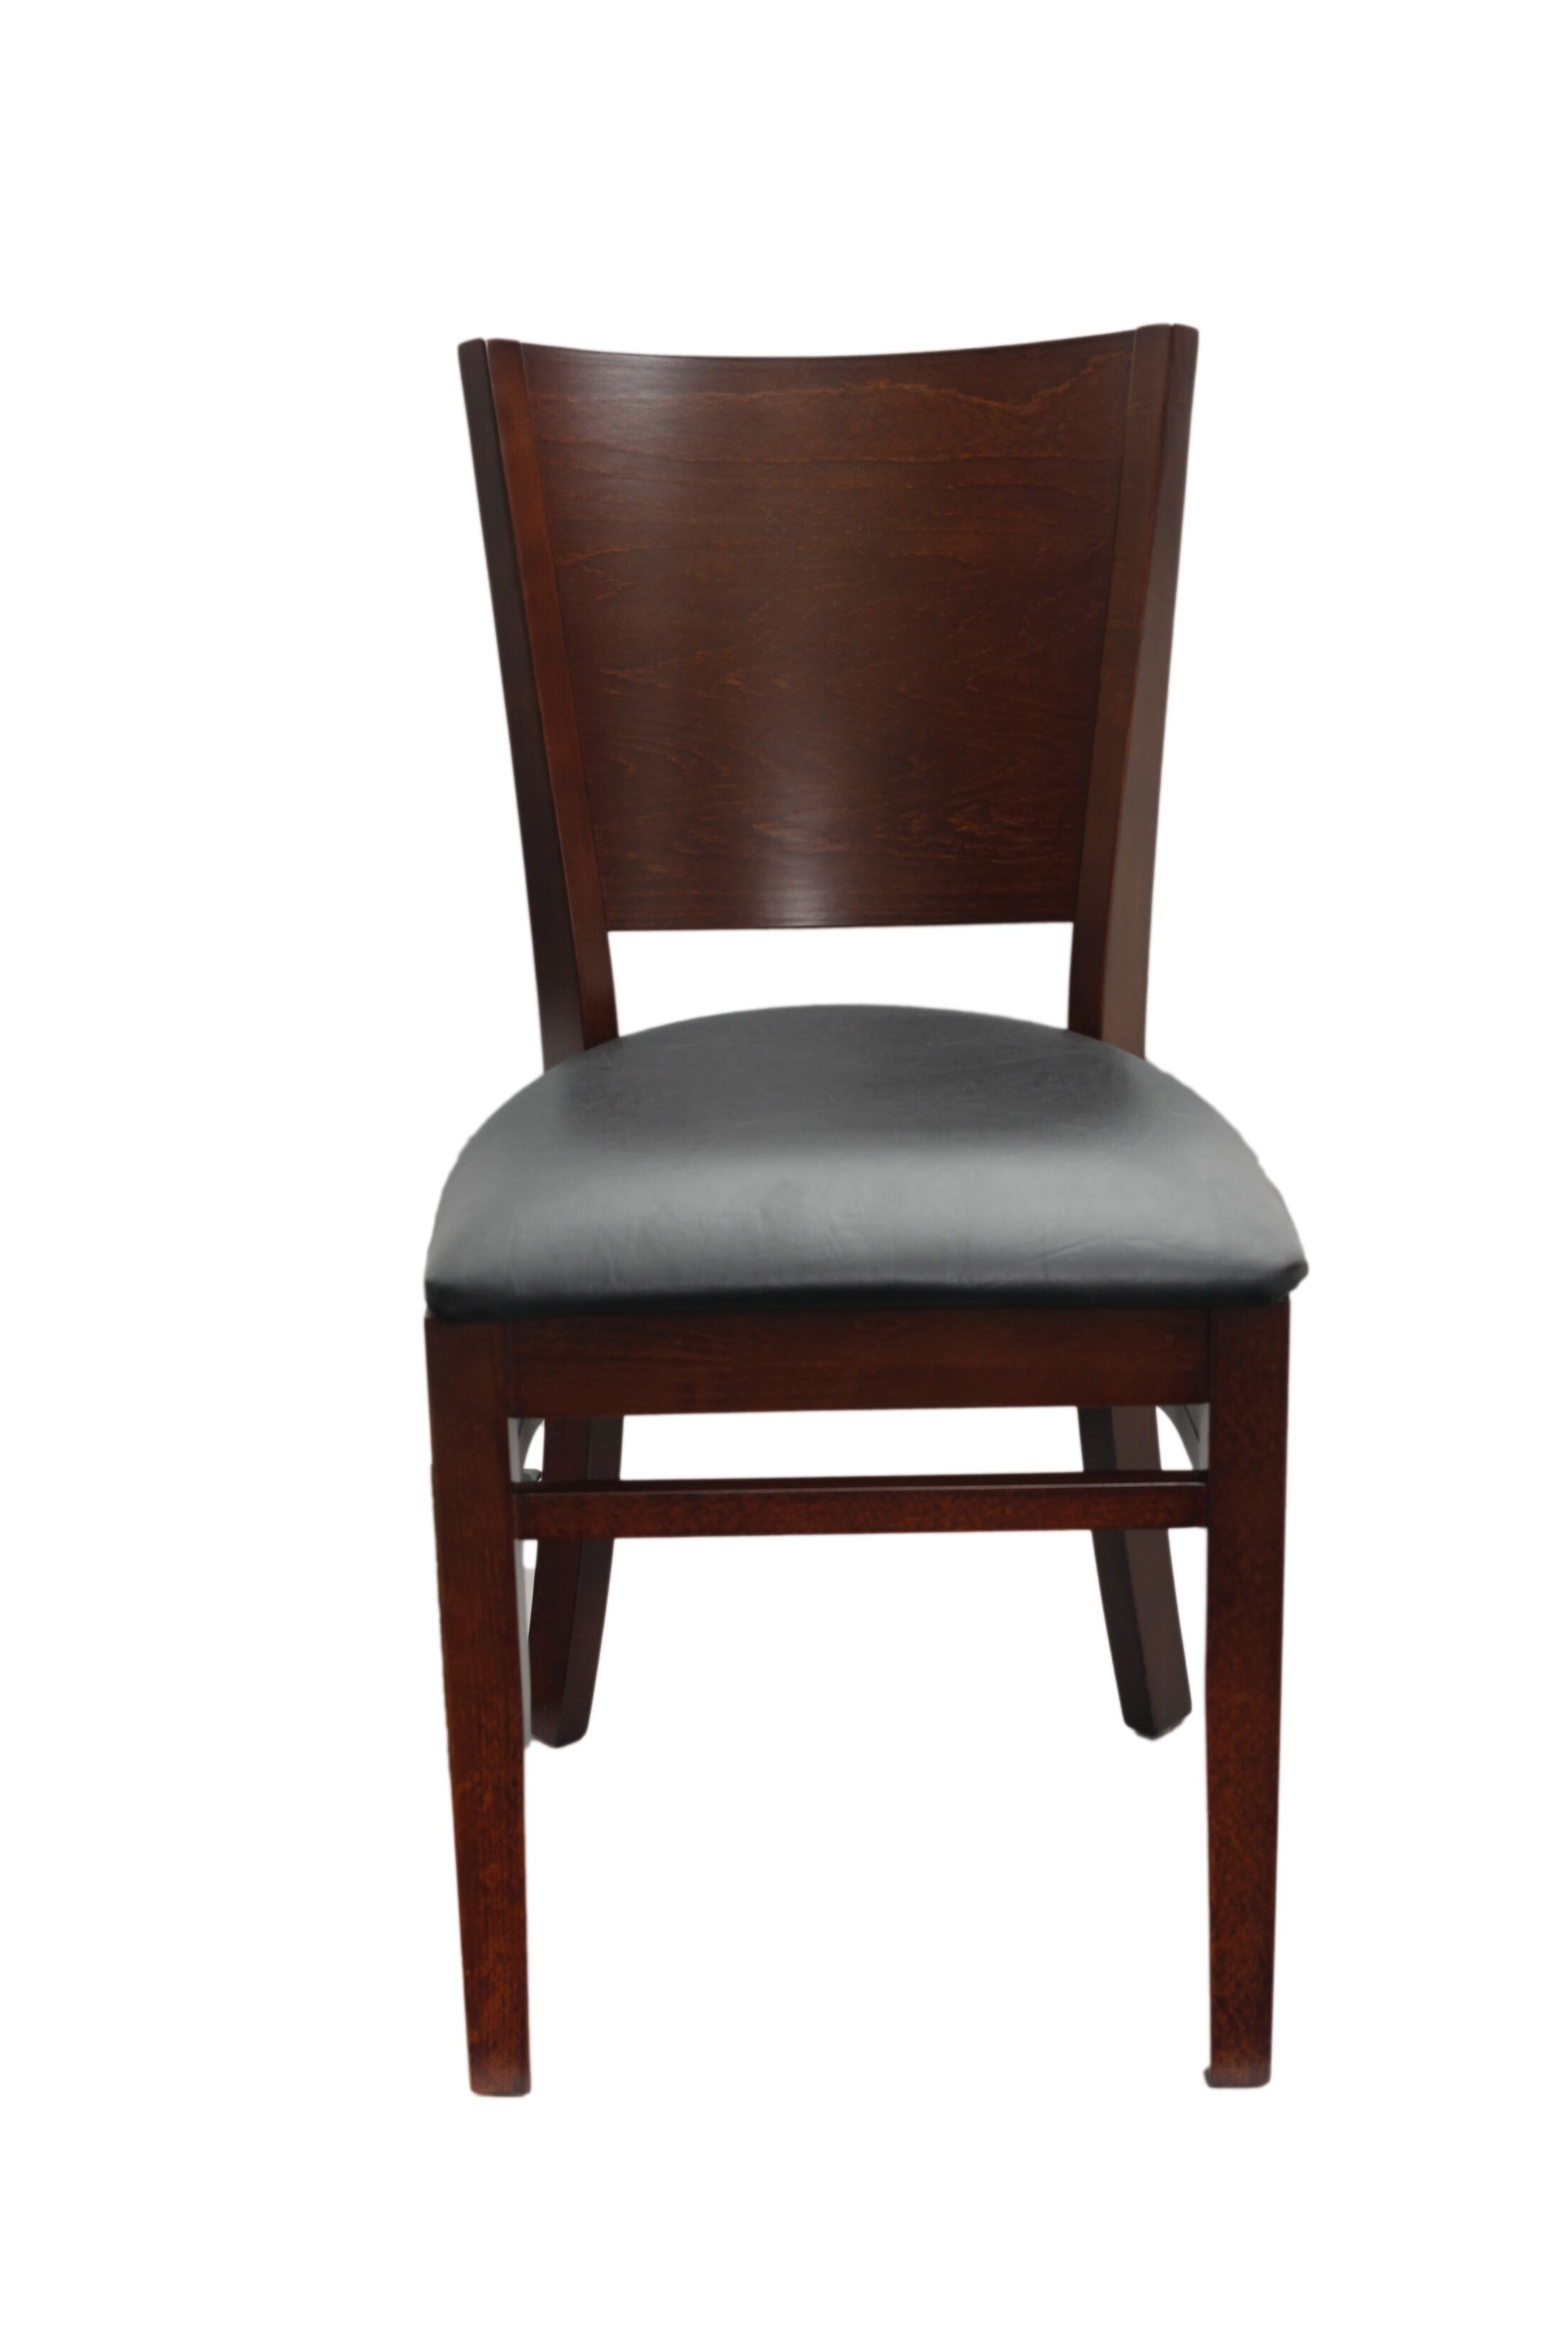 Series Melissa Side Chair Finish: Walnut, Upholstery Color: Black Vinyl Padded